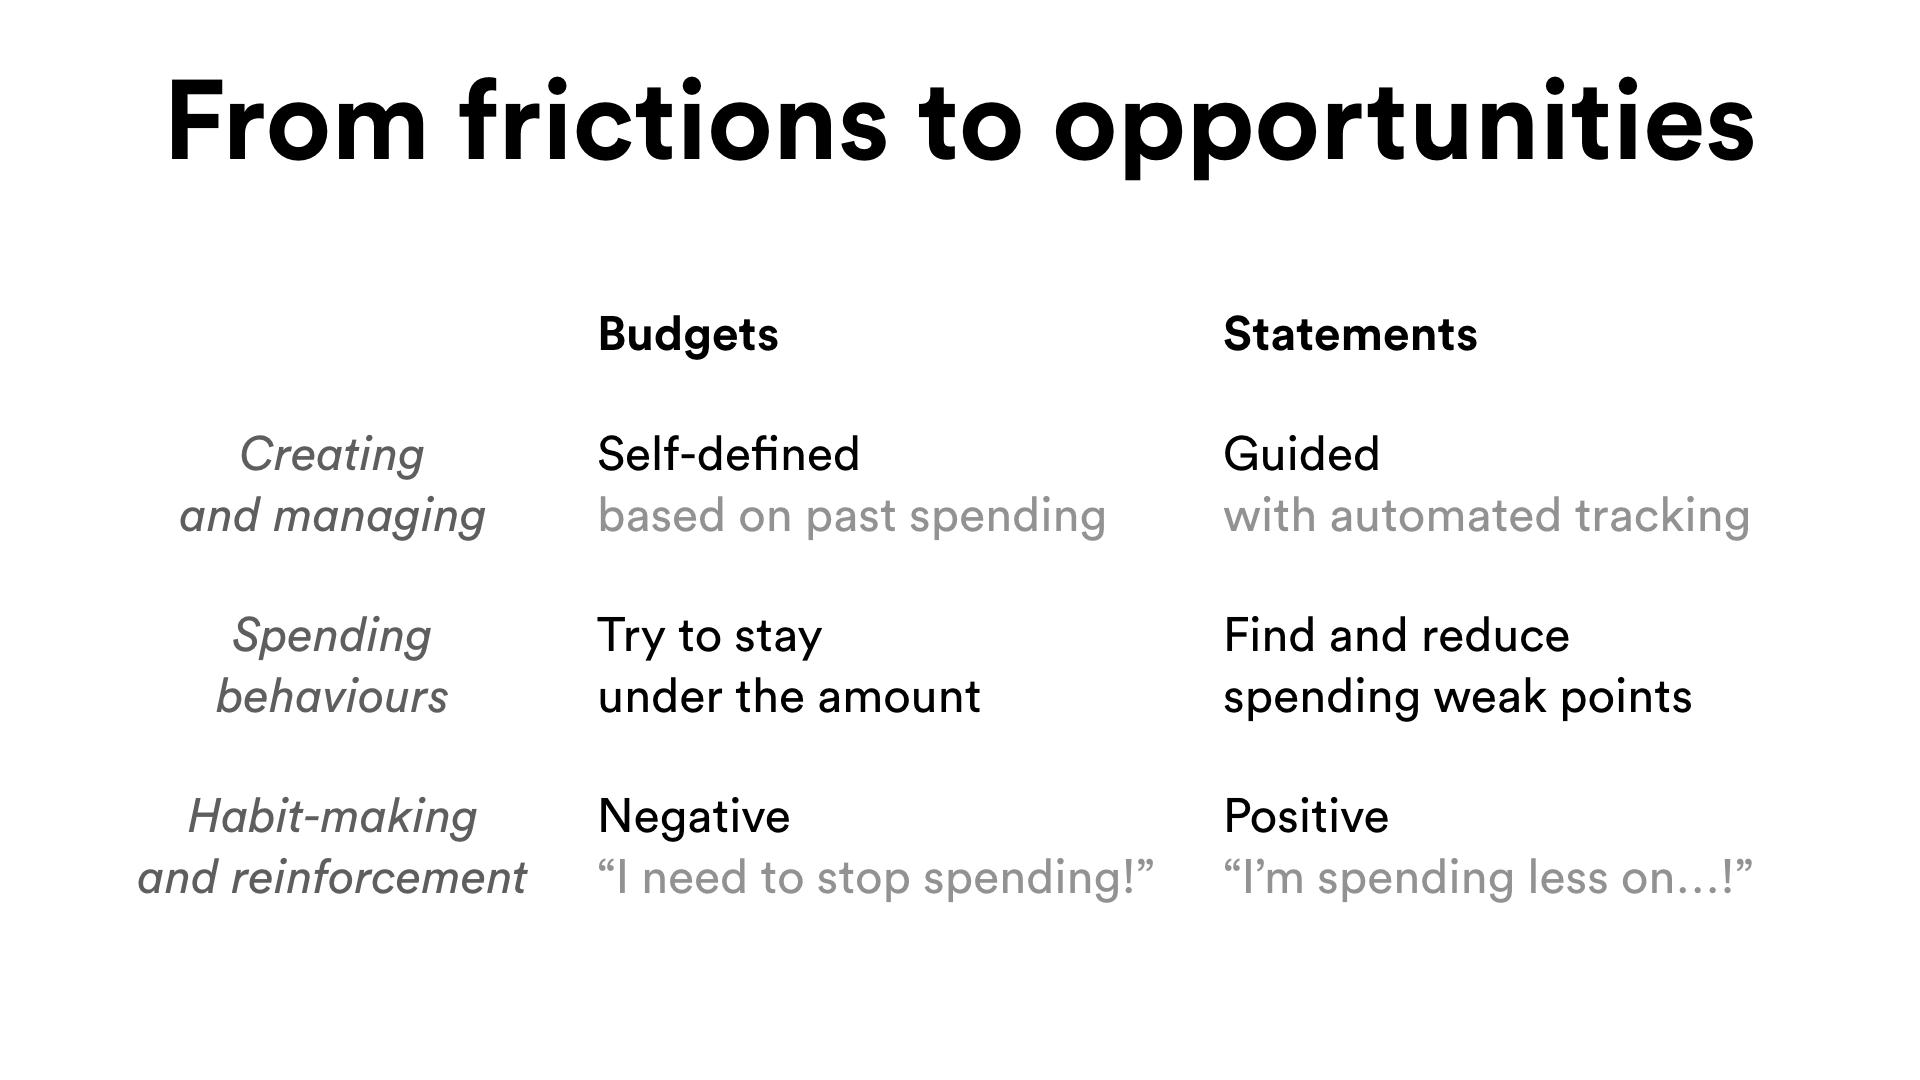 Frictions and opportunities with budgeting and Statements